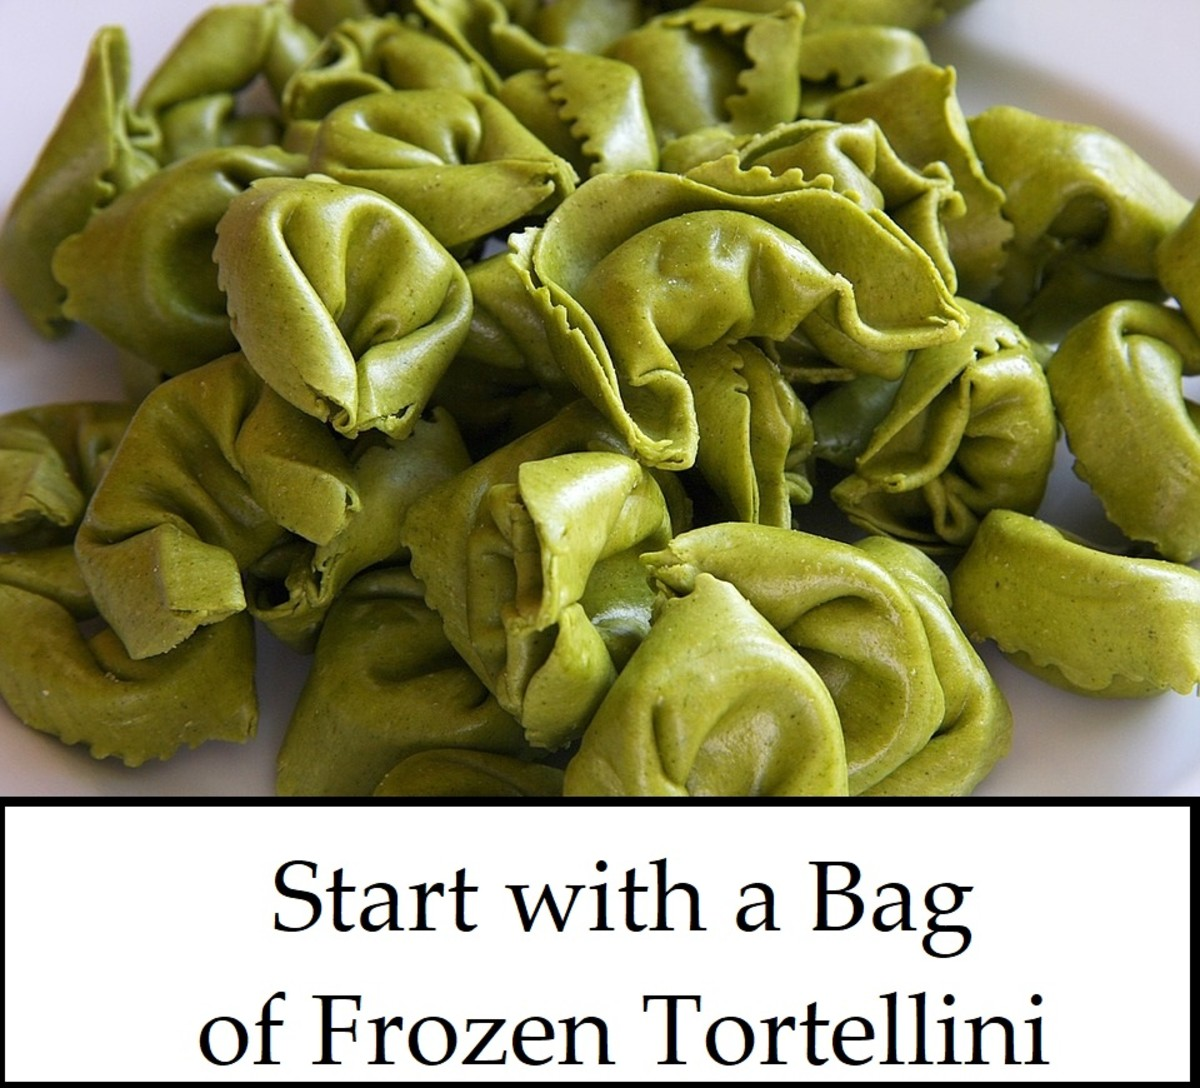 Start With a Bag of Frozen Tortellini